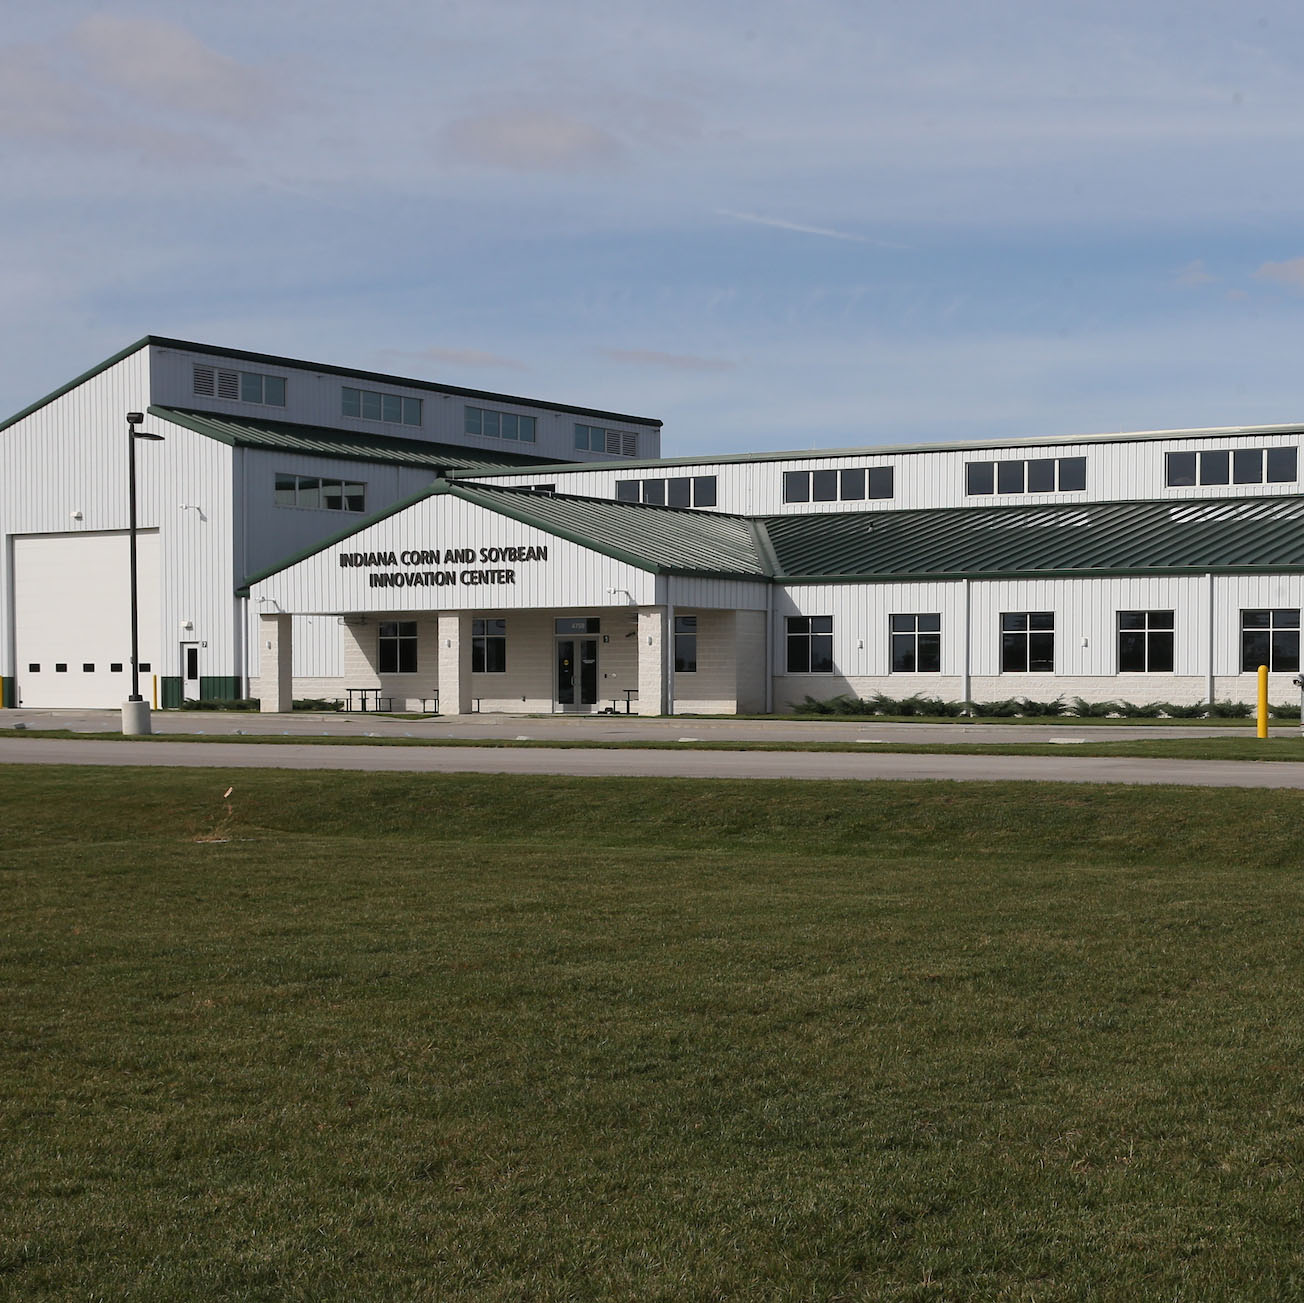 Corn and Soybean Center - 10/31/2017 -  Photos at the Indiana Corn and Soybean Innovation Center at the Purdue Agronomy Center for Research and Education (ACRE) facility. Photos are updated exterior shot of the building.